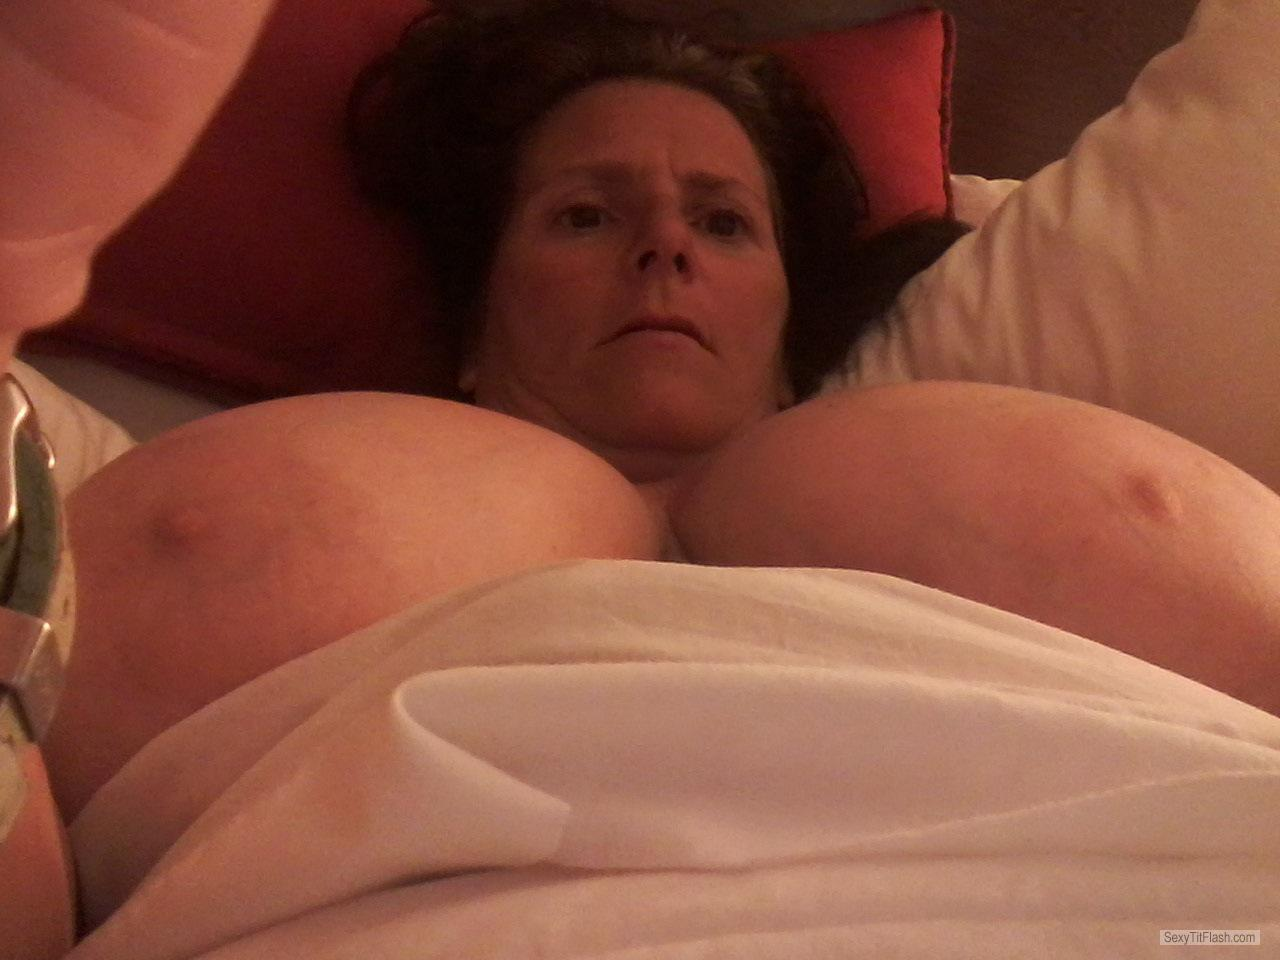 Tit Flash: Wife's Big Tits (Selfie) - Topless Momma Juggs from United States